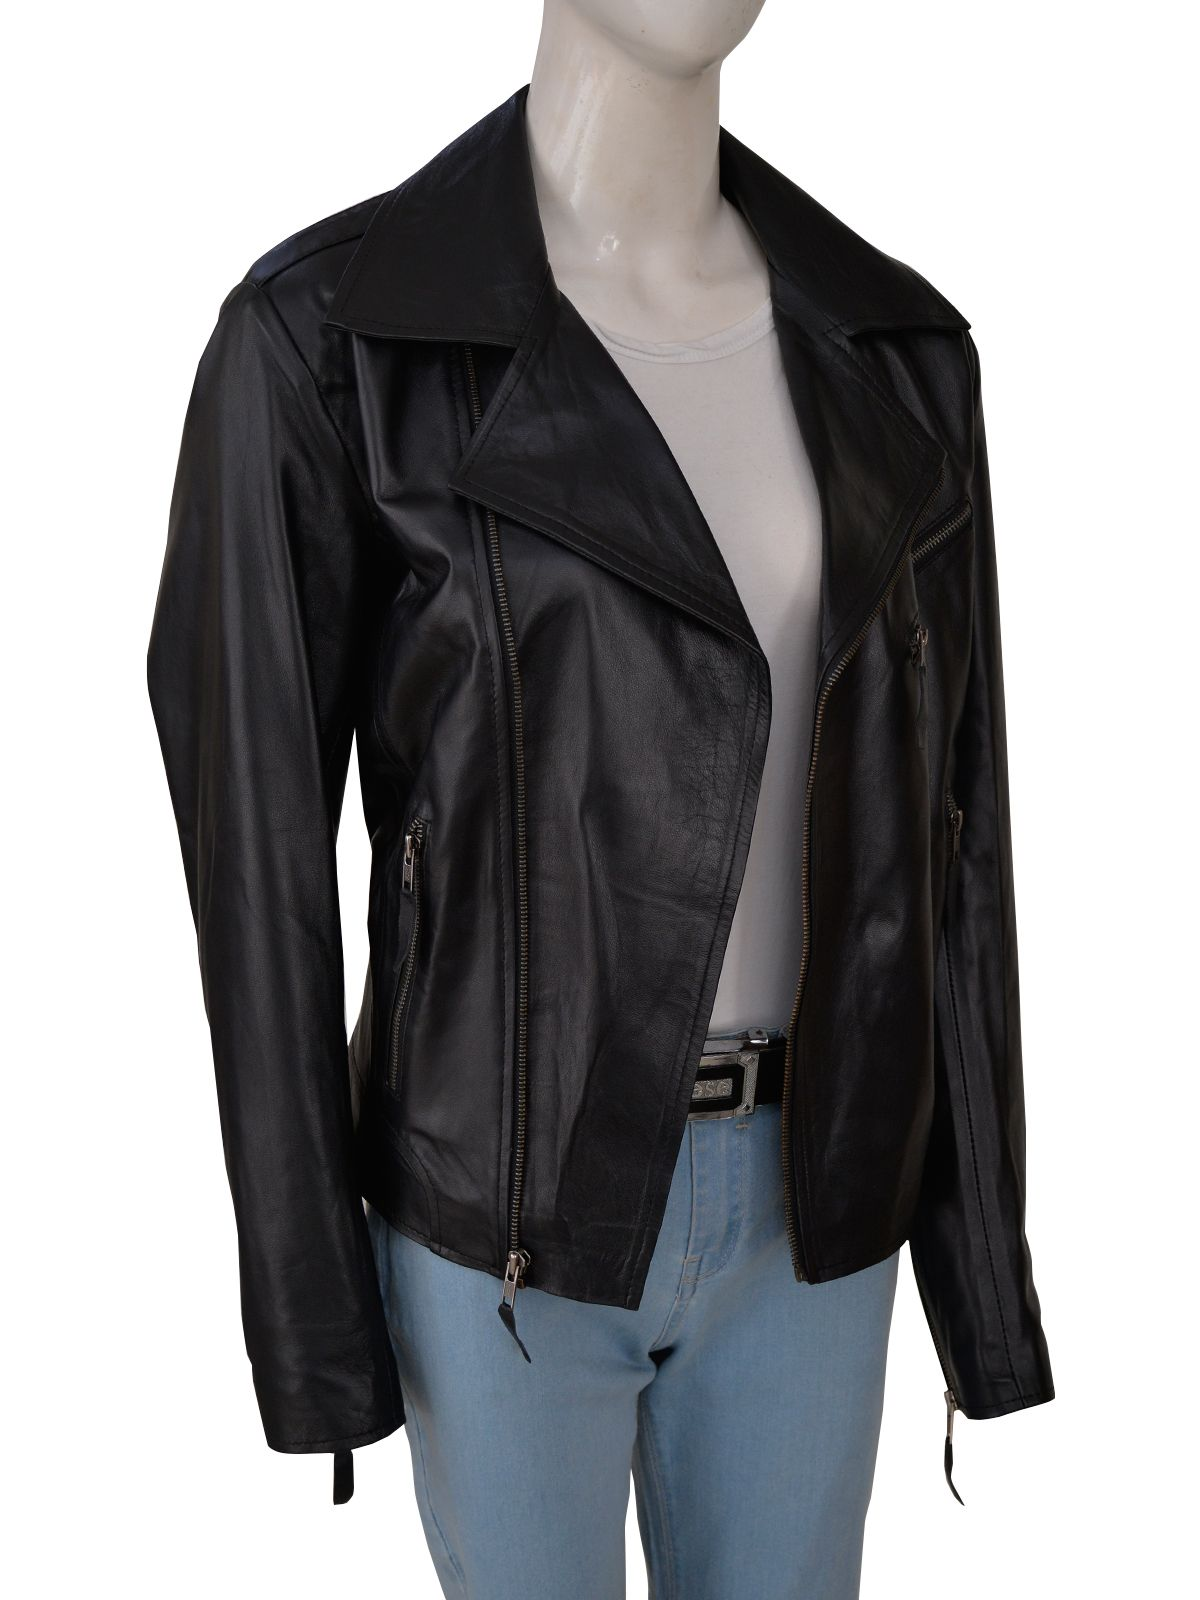 This Attractive Women Black Brando Jacket Is Made Up Of 100 Original Cowhide Leather Jacket Mauvetree Leather Jackets Women Leather Jacket Jackets For Women